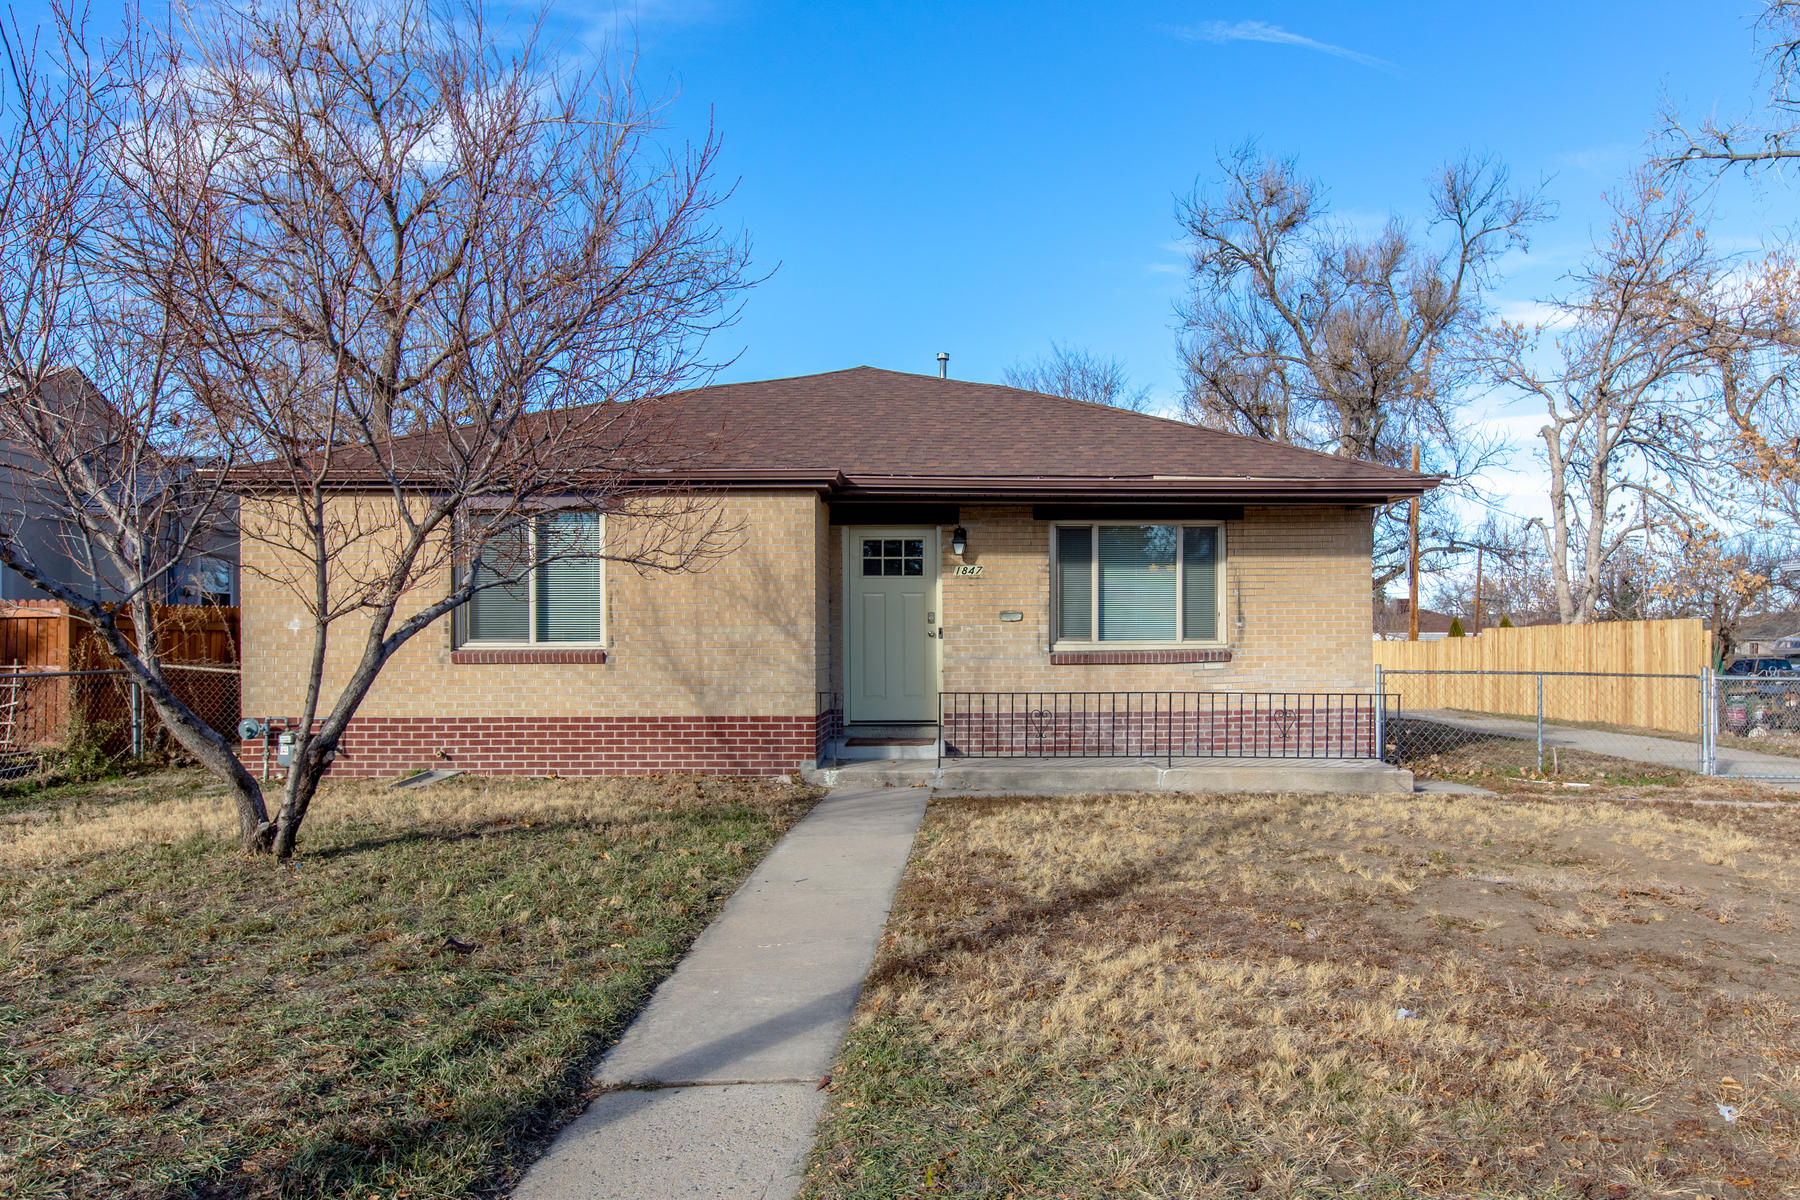 Property for Active at This fabulous remodeled brick home in Sunnyside is move-in ready 1847 W 47th Avenue Denver, Colorado 80211 United States